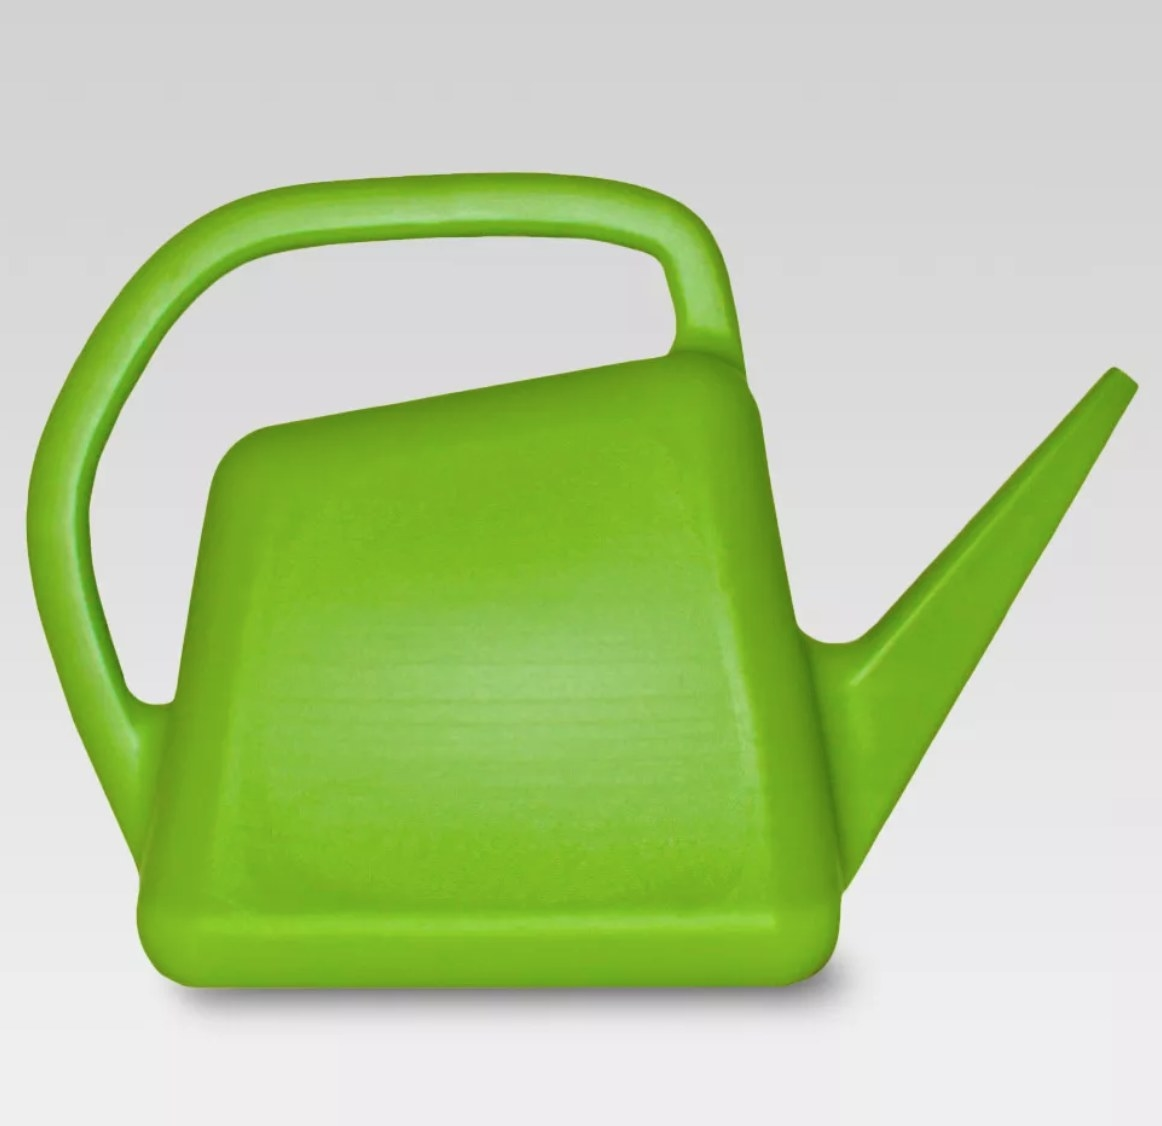 A bright green plastic watering can